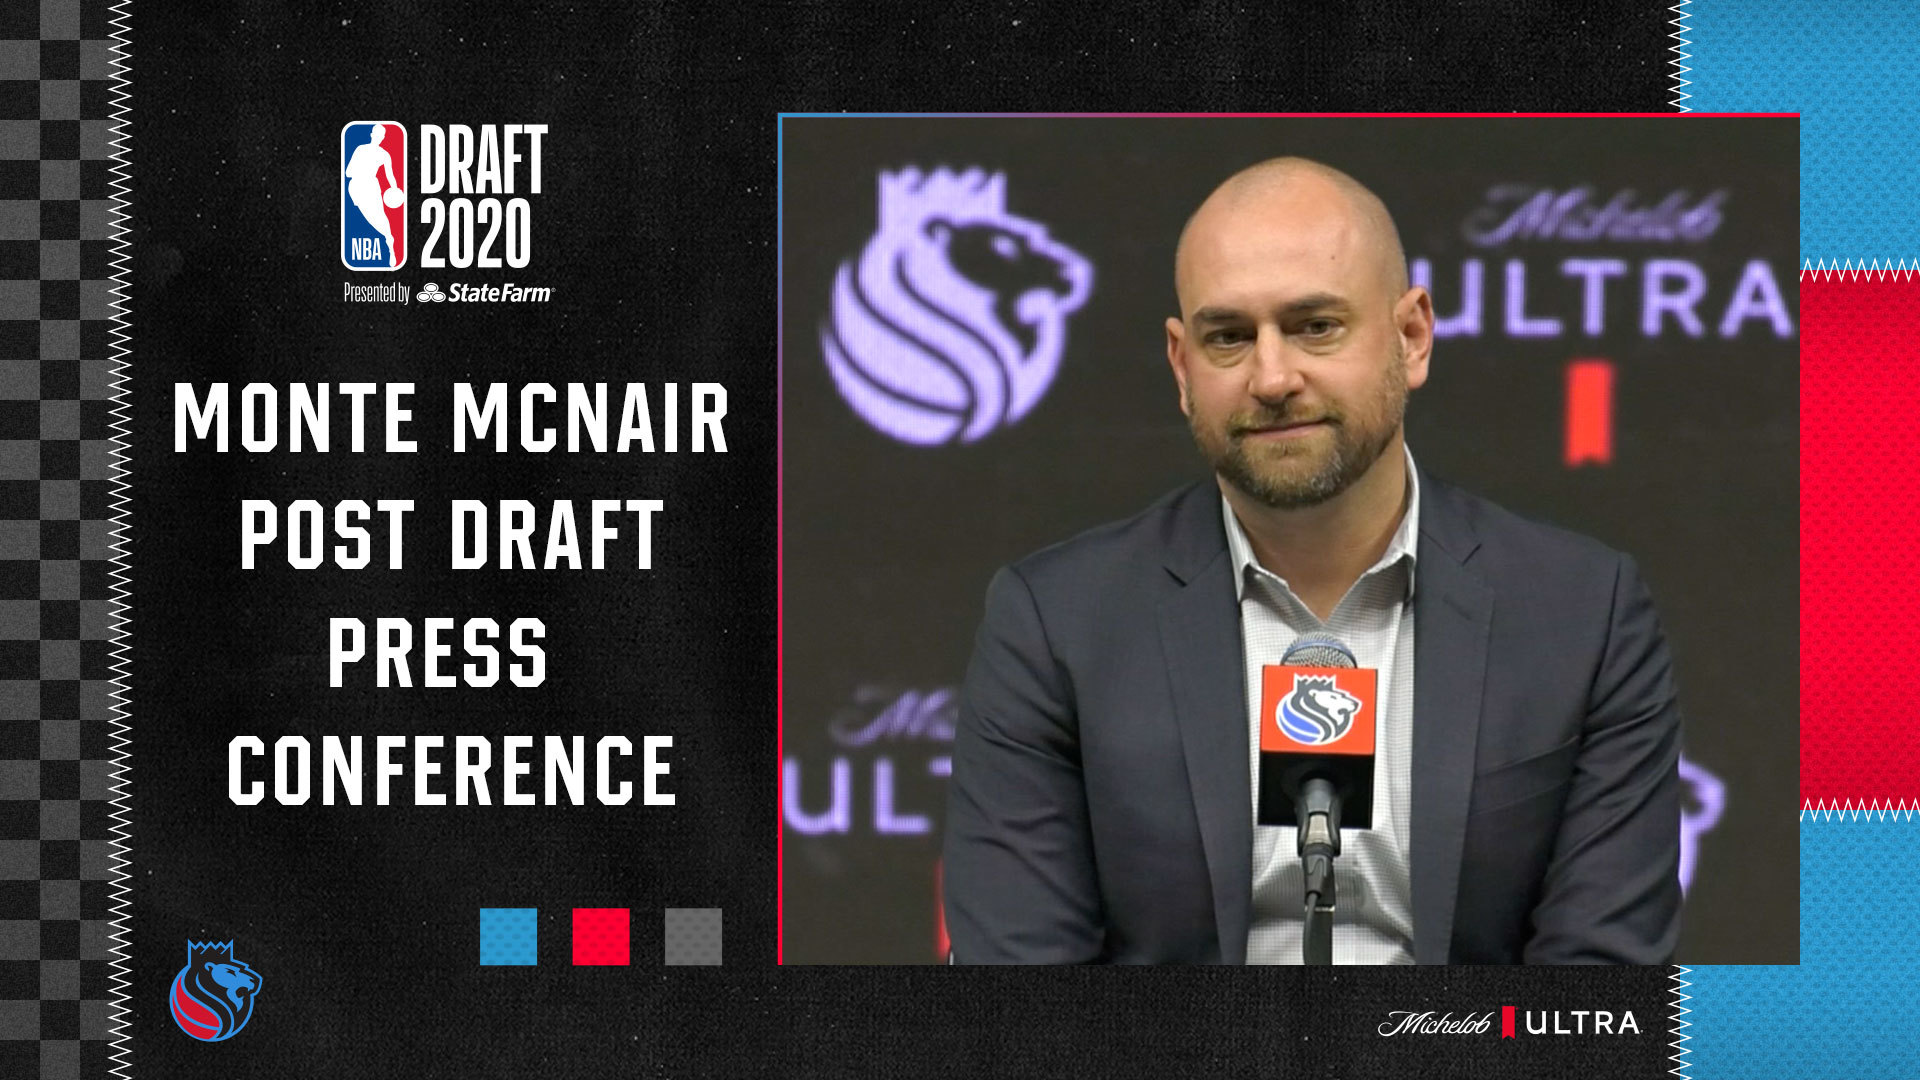 Monte McNair Post Draft Press Conference